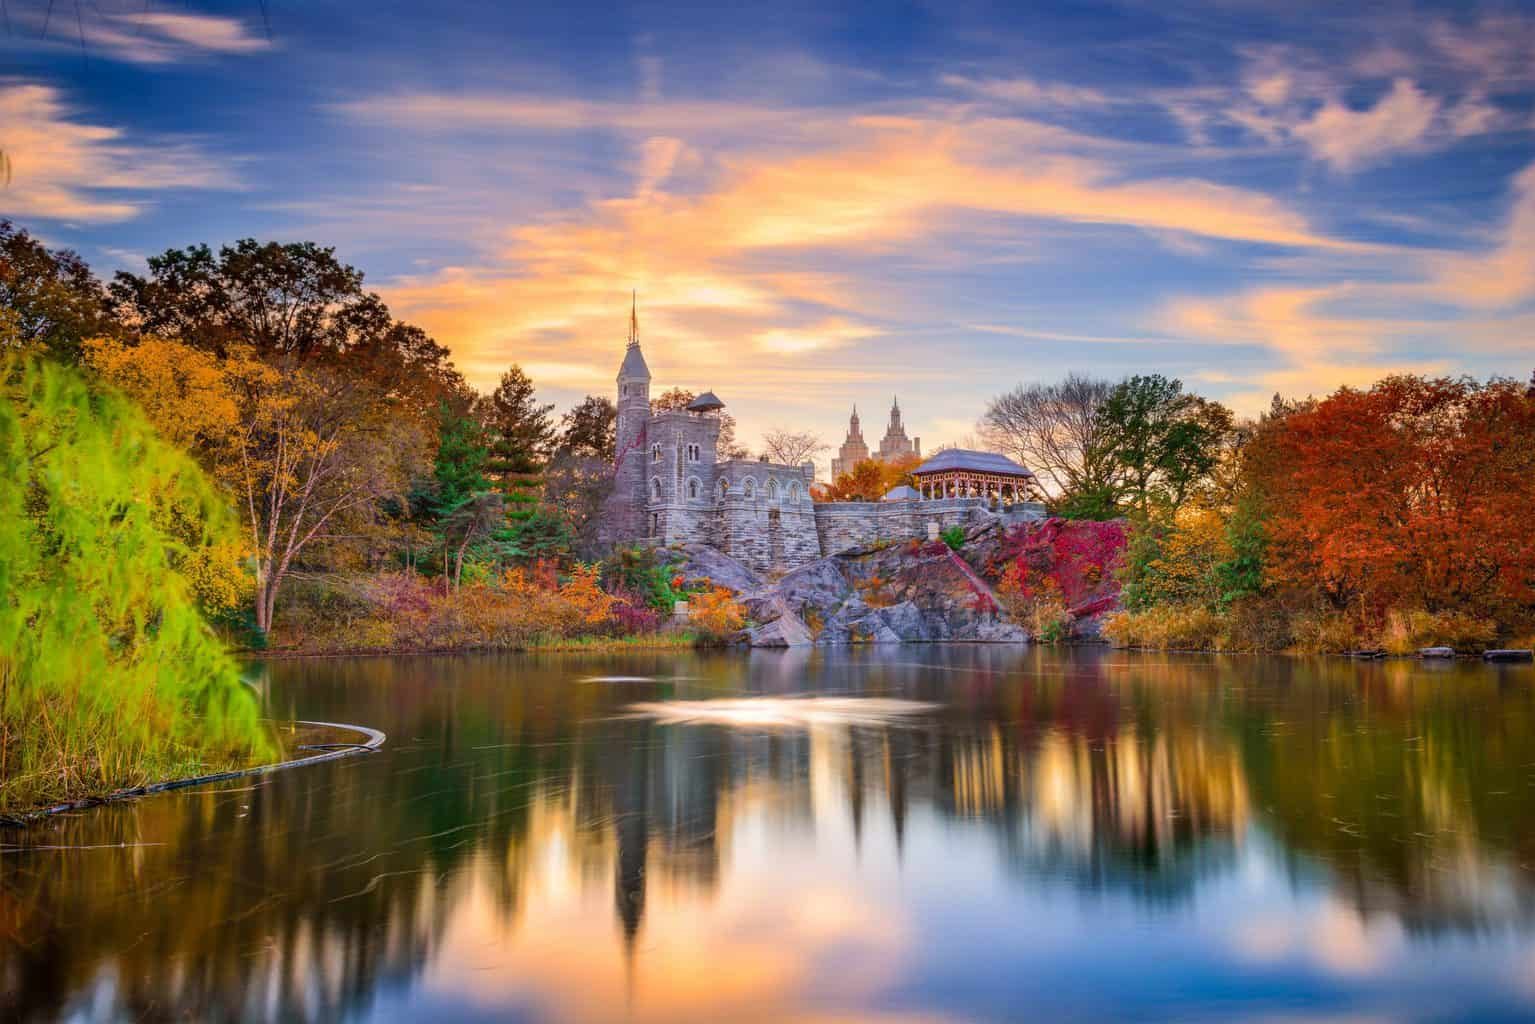 Climb up the winding stairs of Belvedere Castle and enjoy stunning panoramas of Central Park.